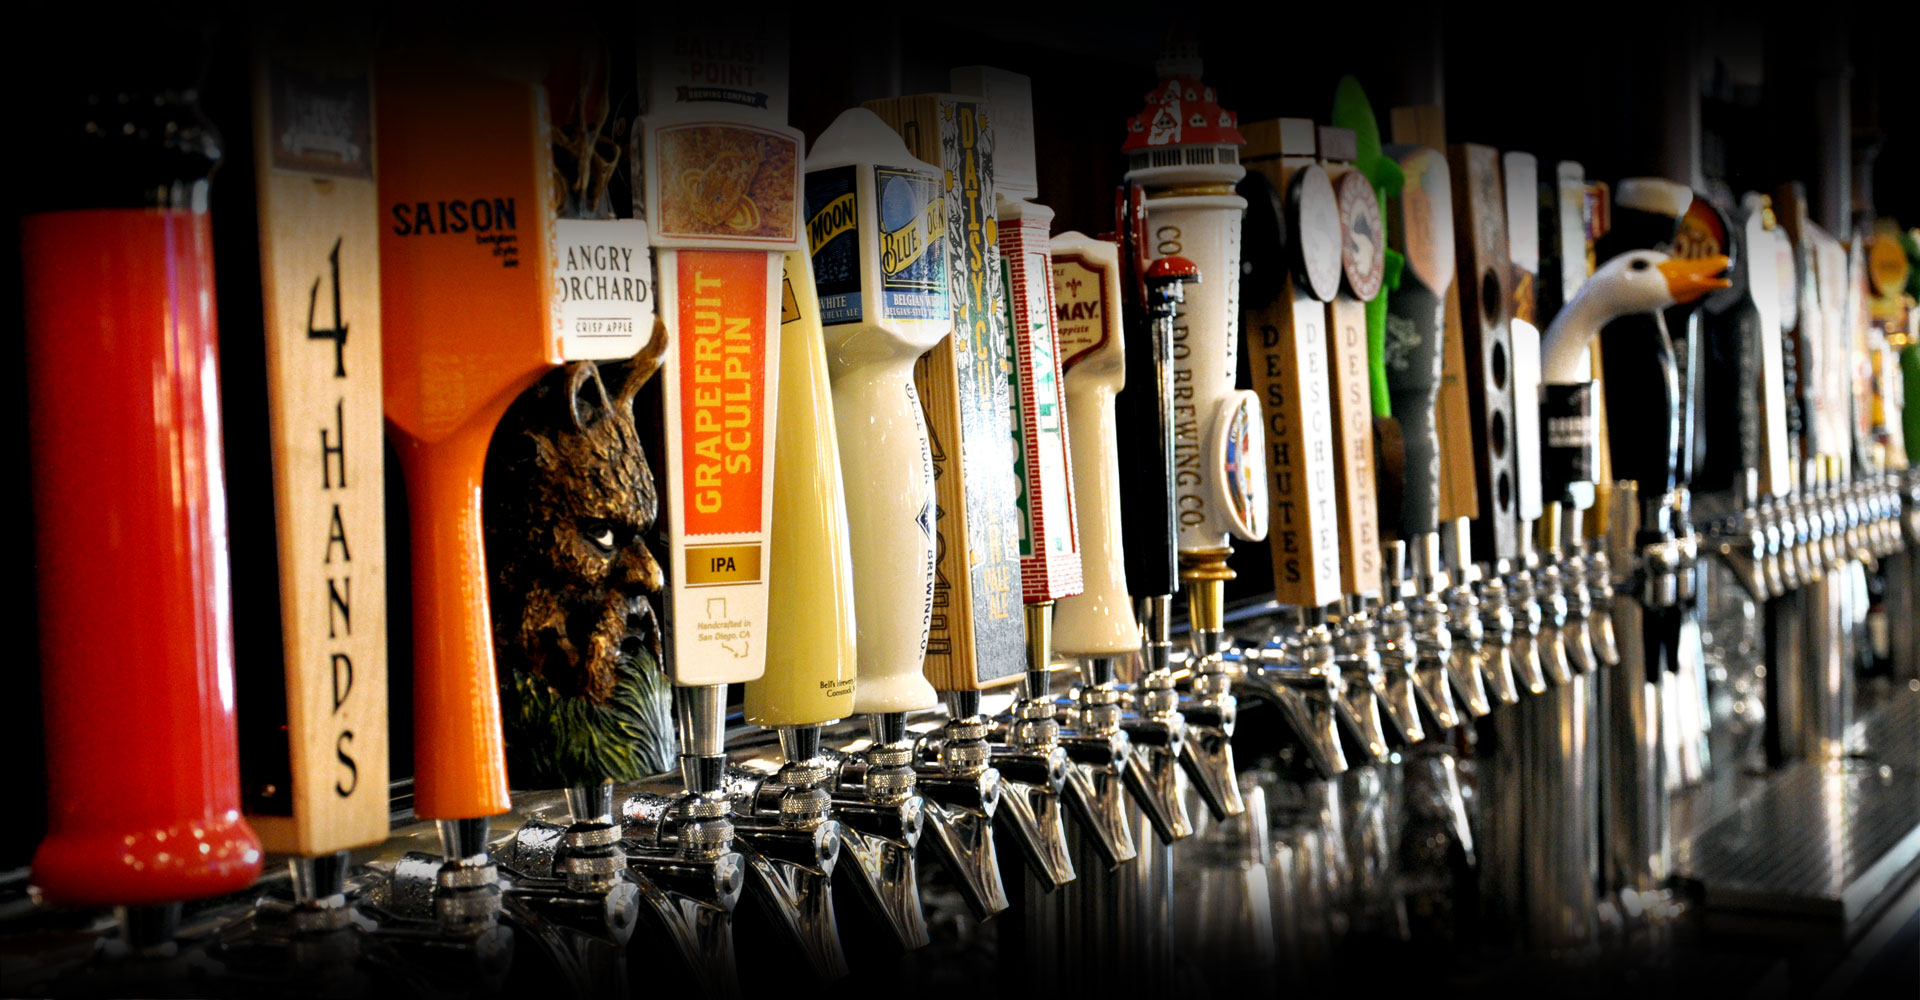 Check out our beer list here!